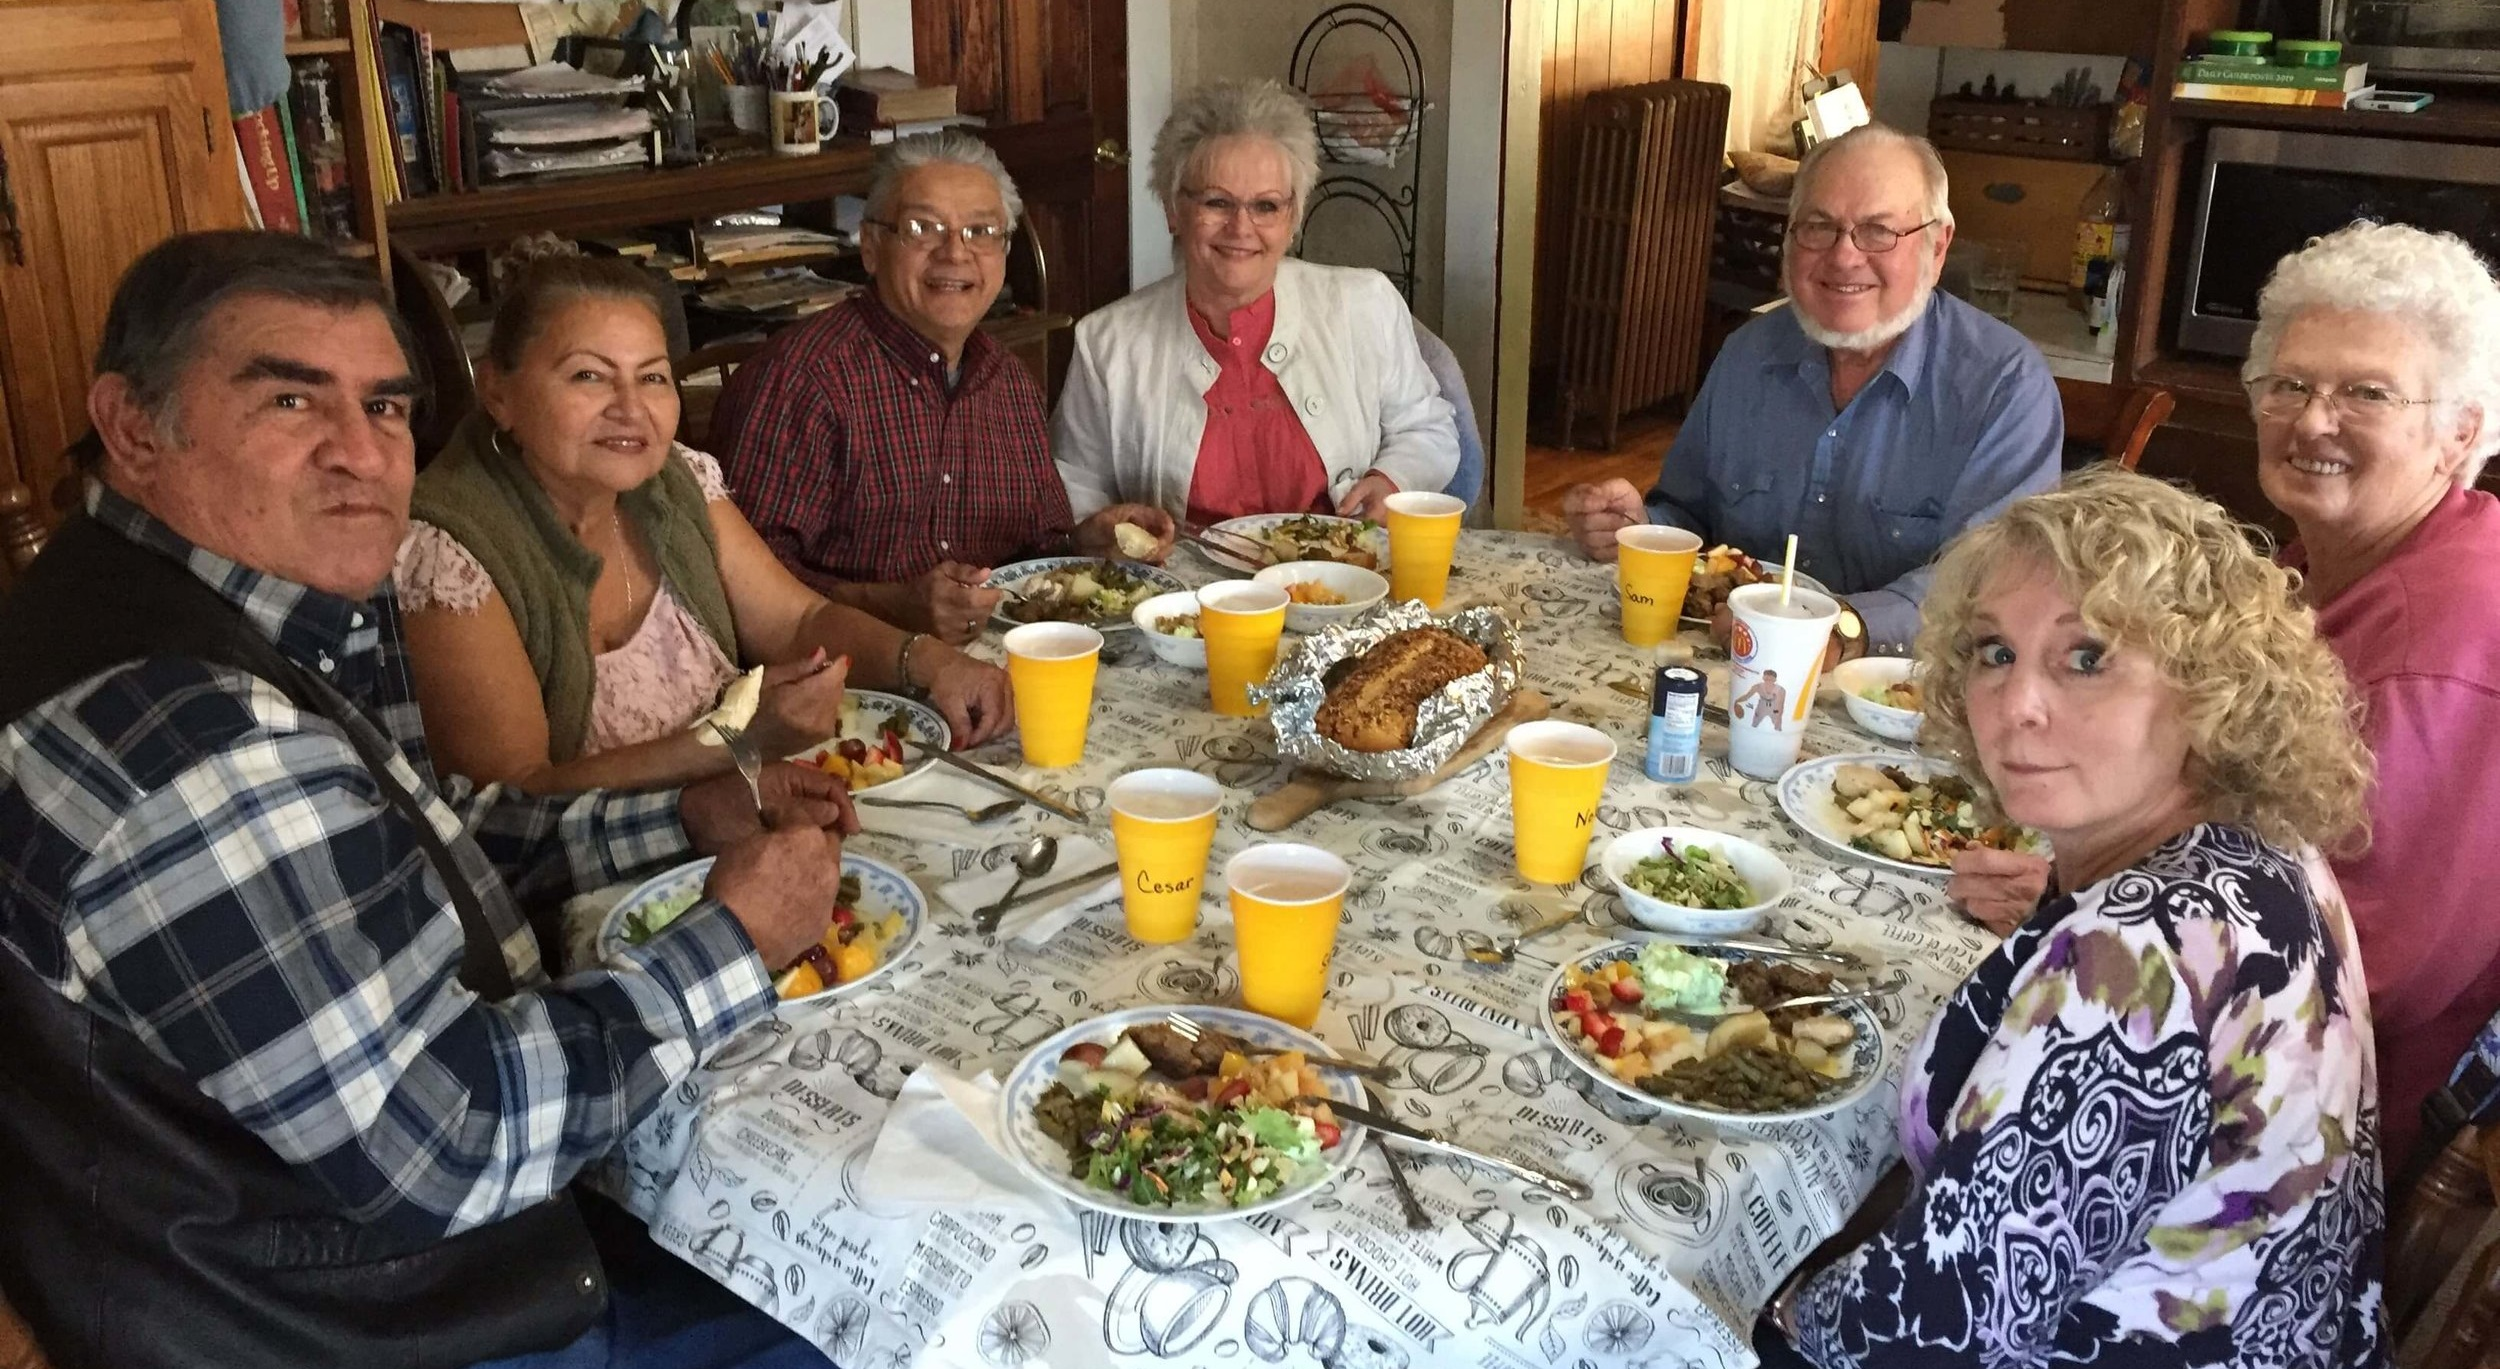 At a meal at Sam and Judy Anderson's in Sibley, Missouri, we enjoyed some tasty deer steaks and all the fixin's! From left to right around the table are Cesar Gonzalez, Elba Gonzalez, Michael Macias, Carla Macias, Sam, Judy, and my wife Nola.